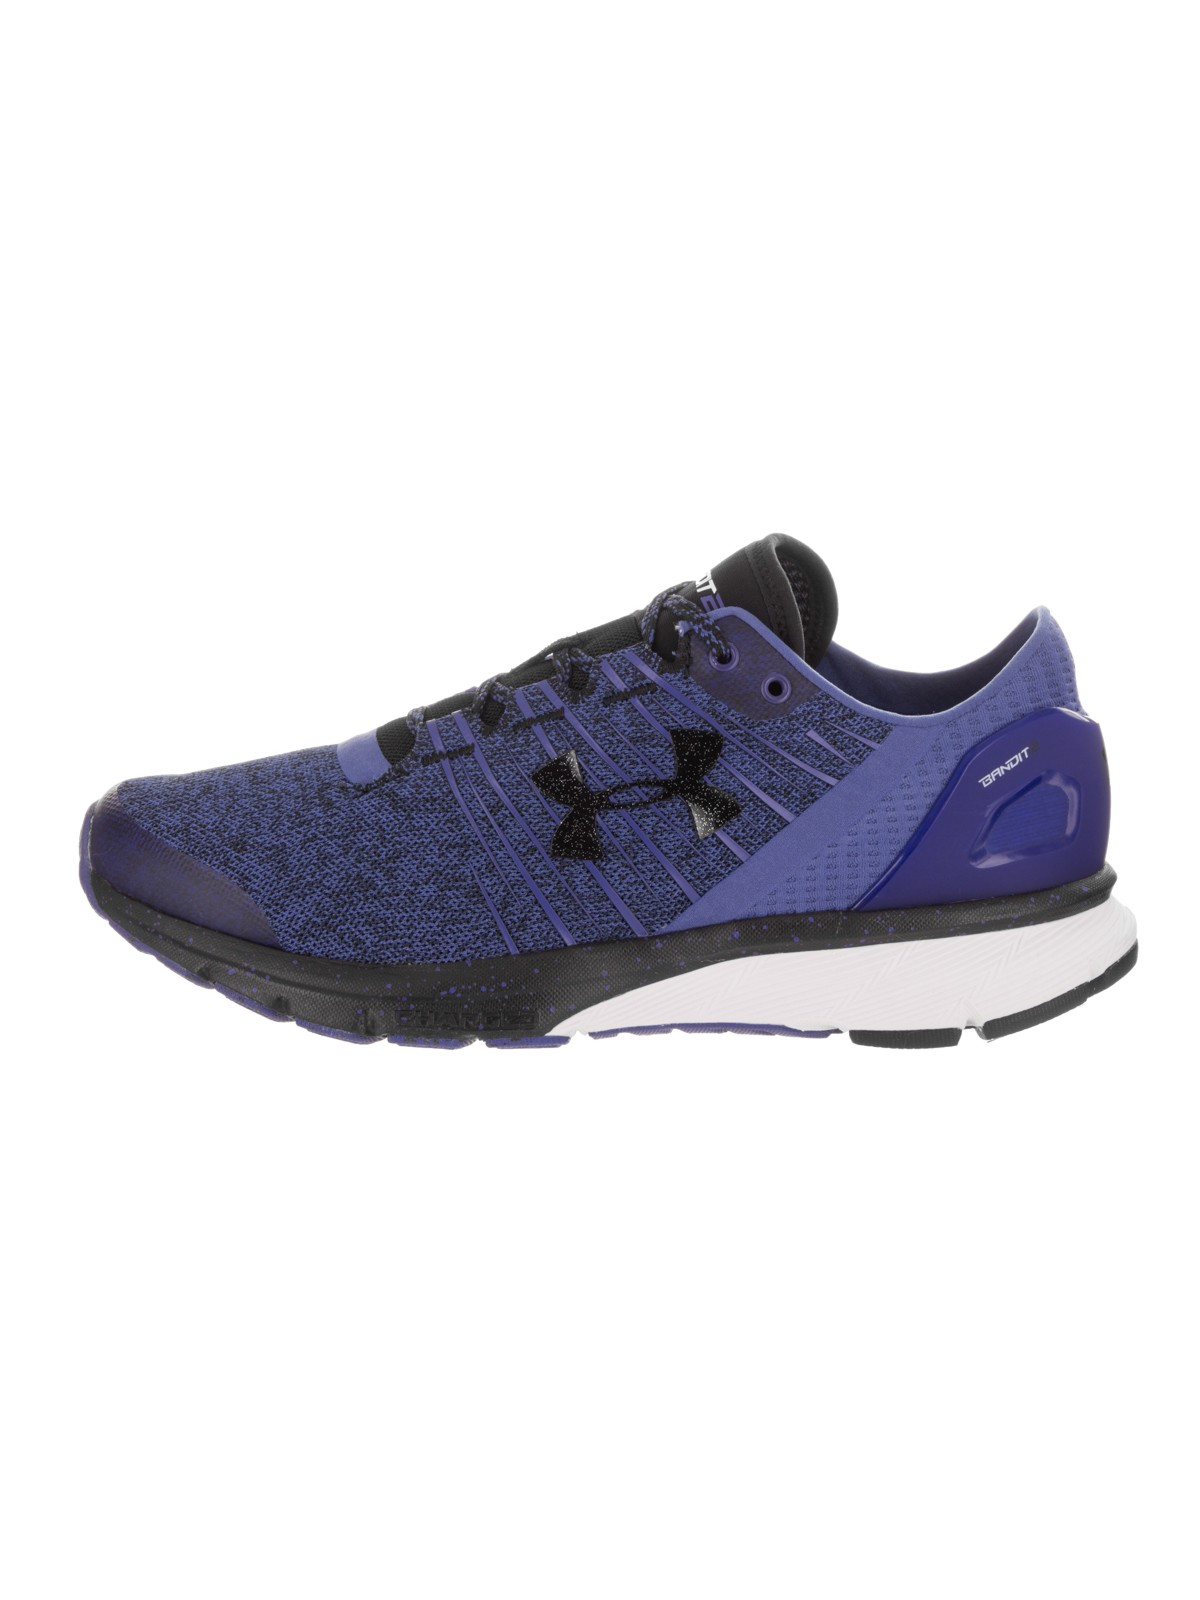 Under Armour Women's Charged Bandit 2 Running Shoe